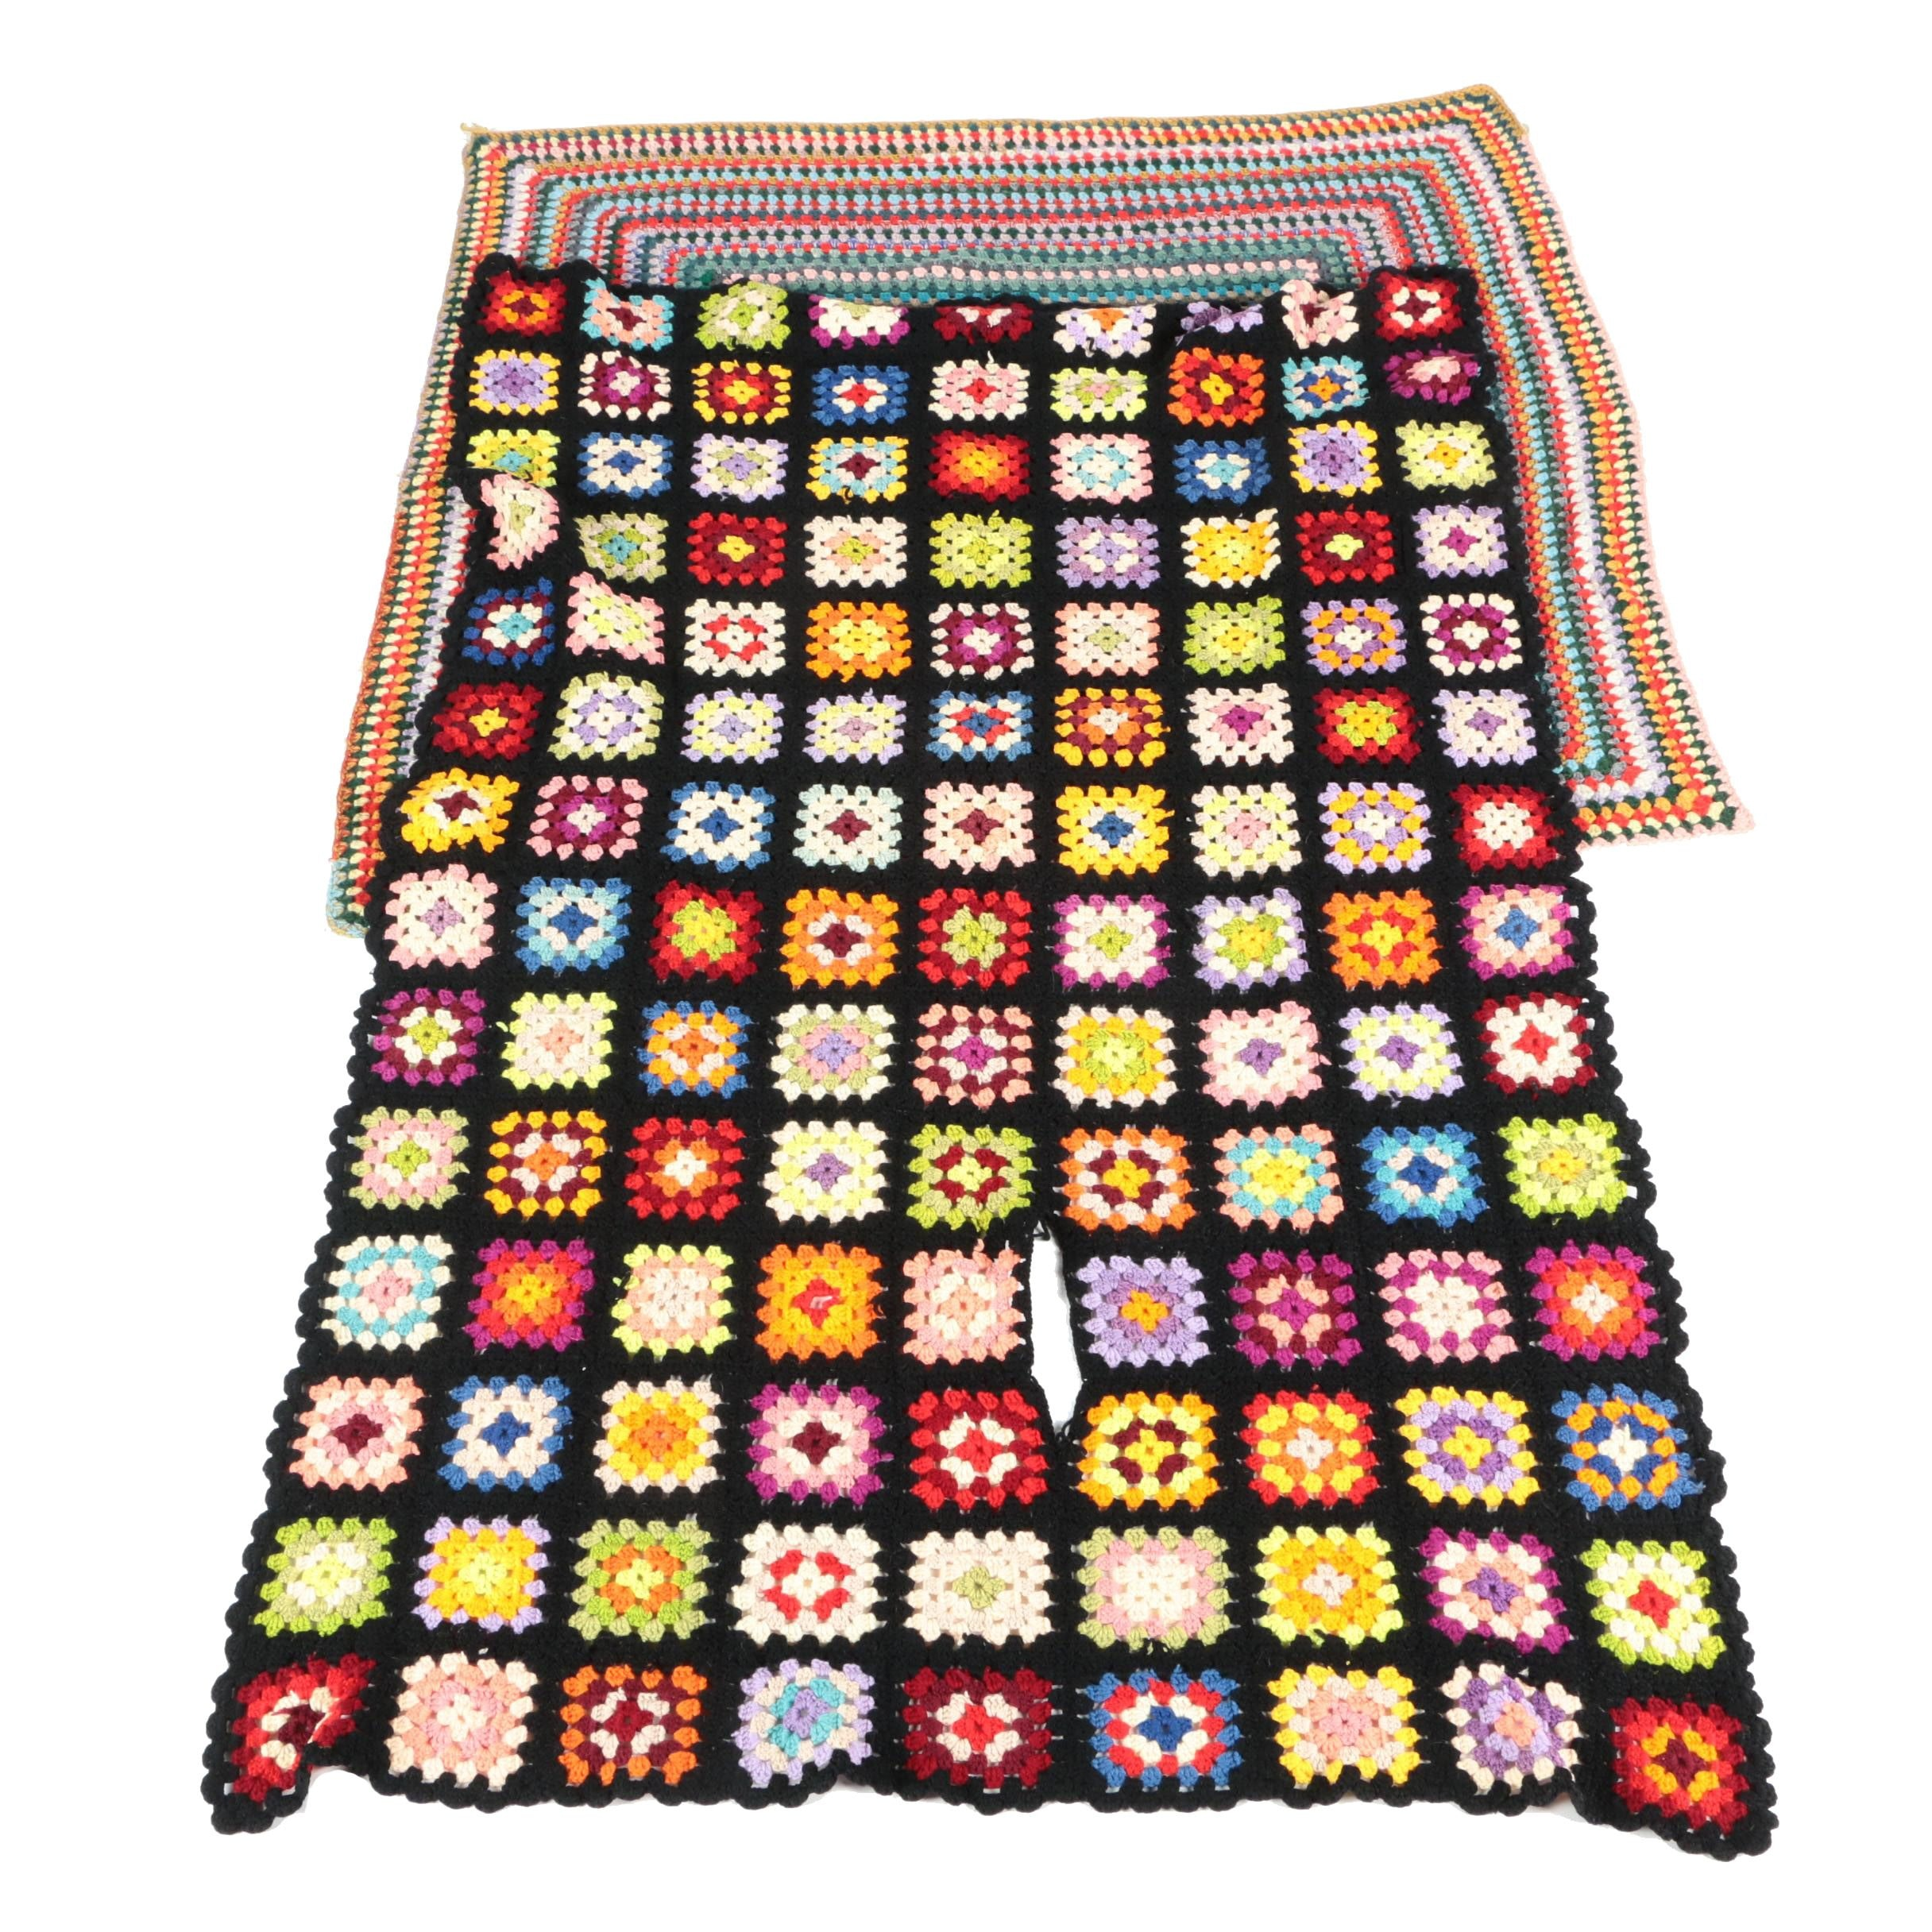 Brightly Colored Crocheted Afghans